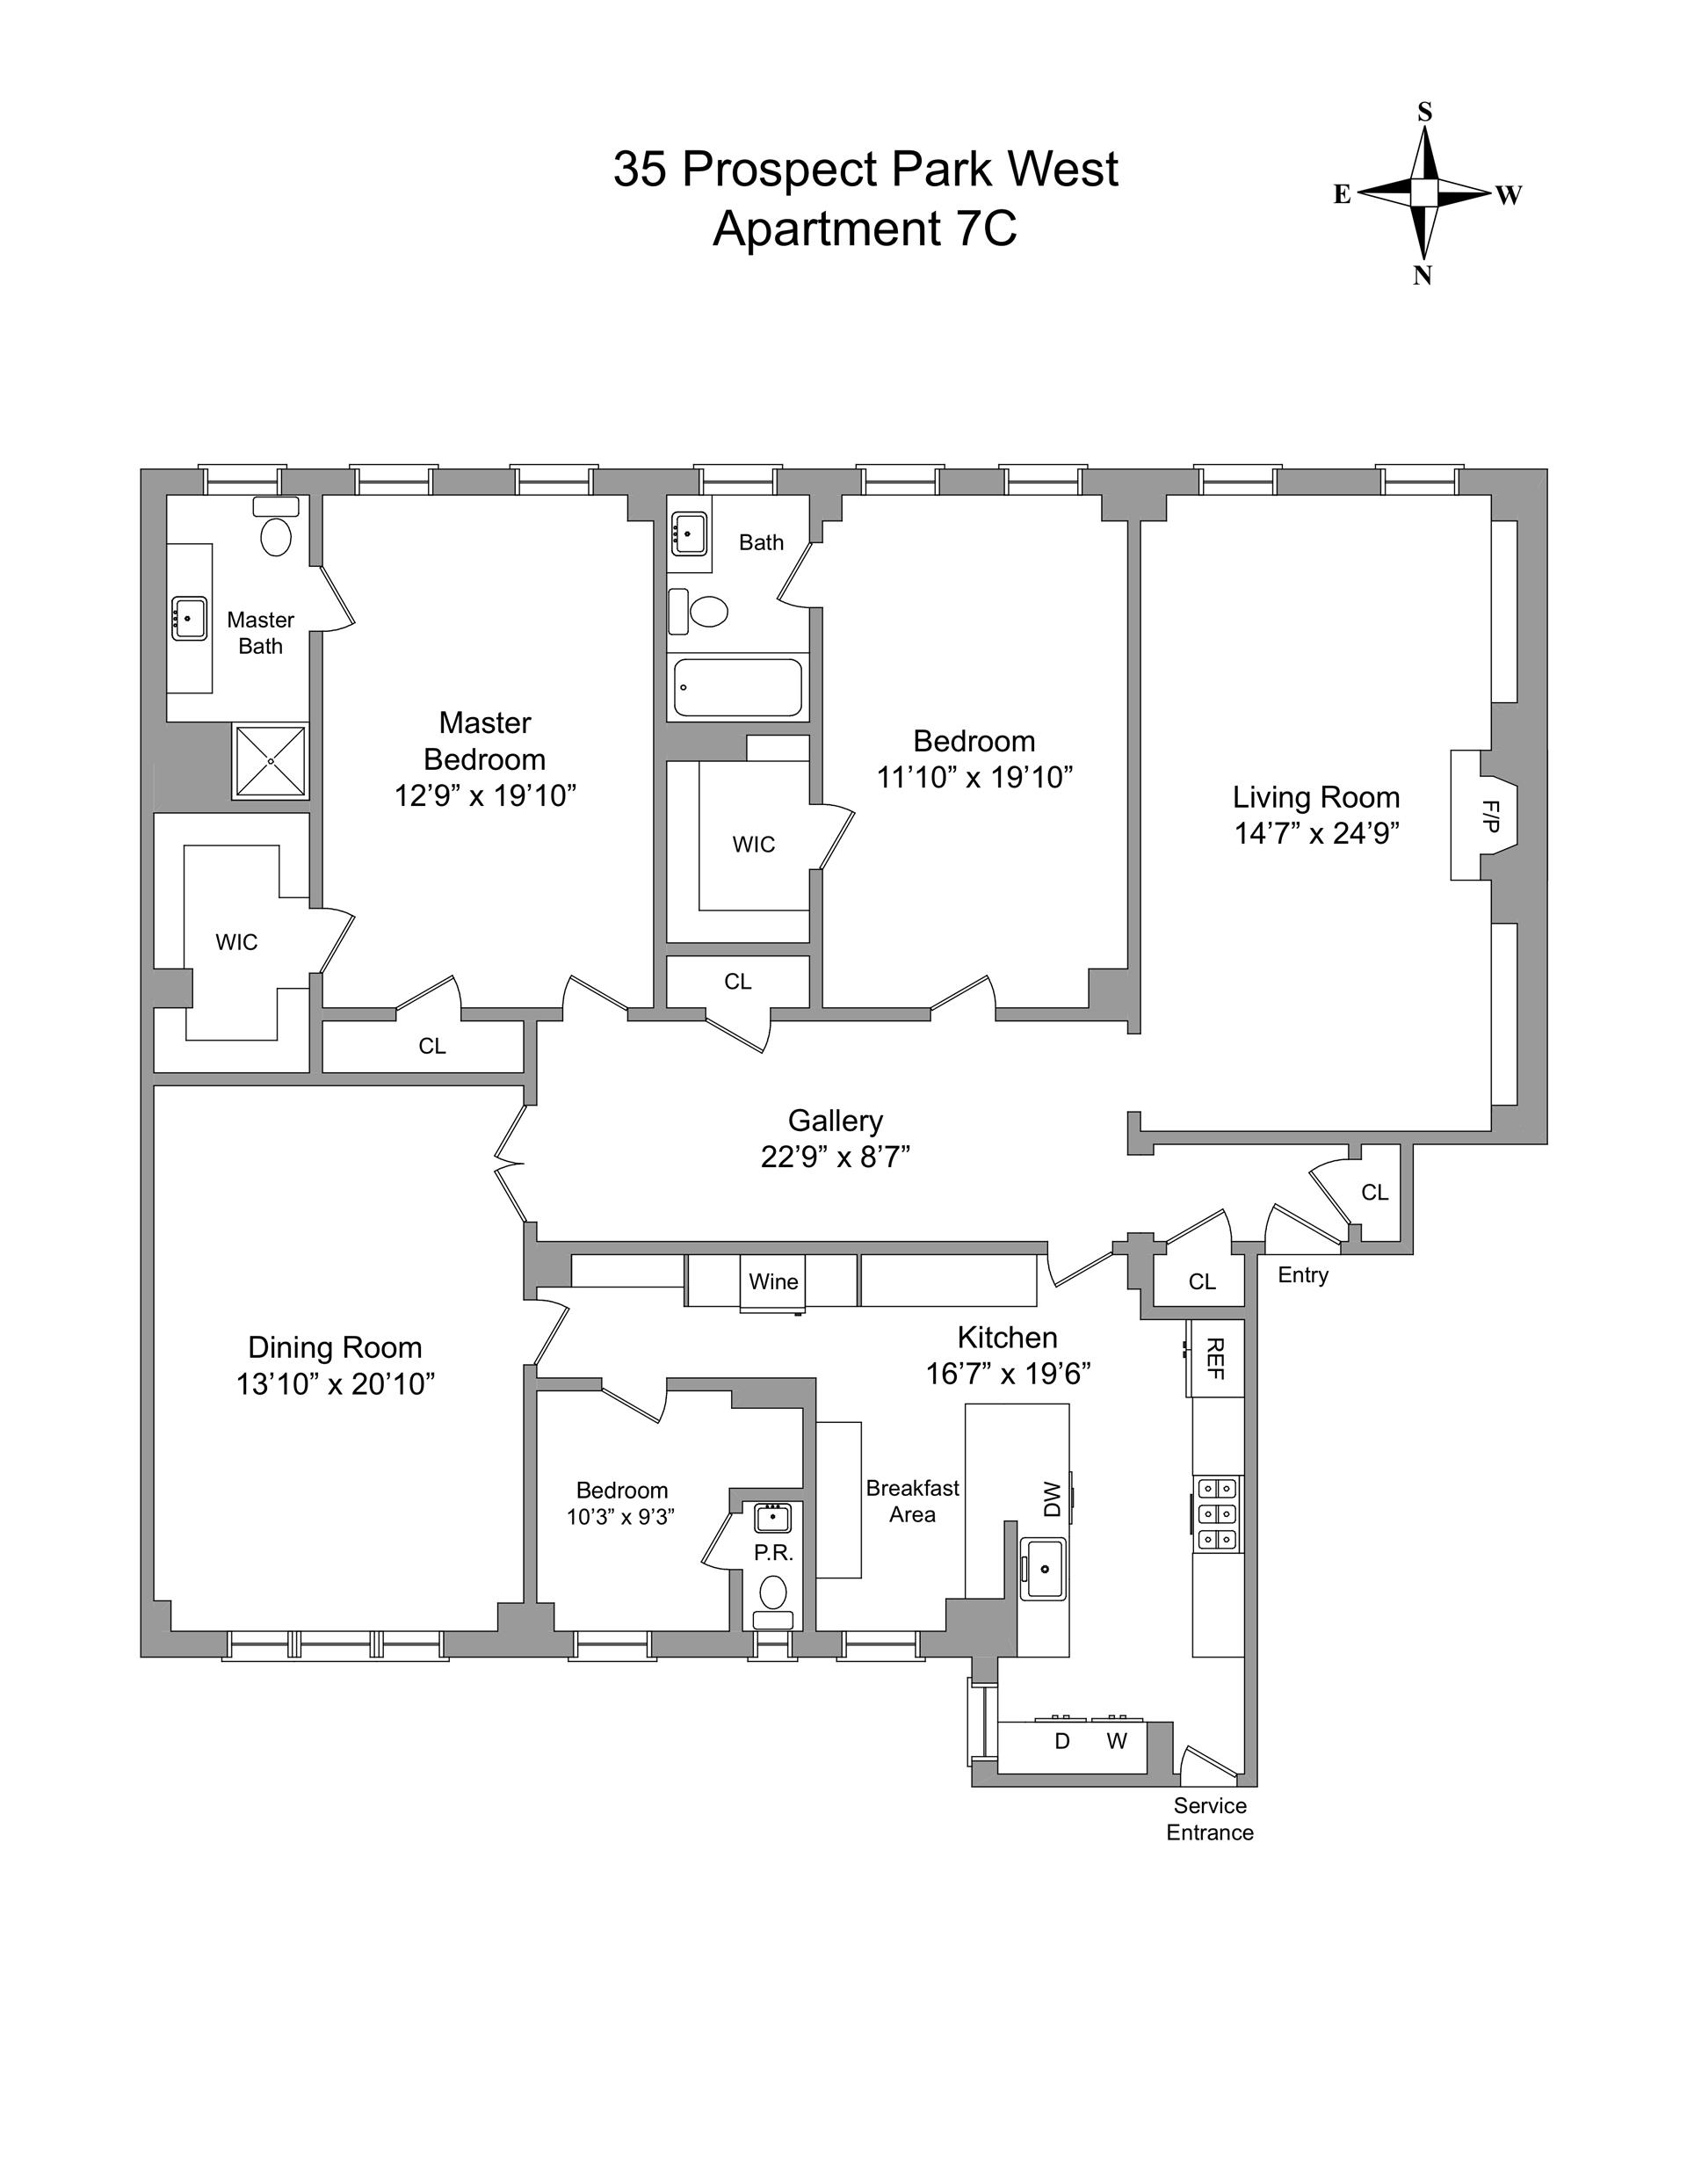 Floor plan of 35 Prospect Park West, 7C - Park Slope, New York